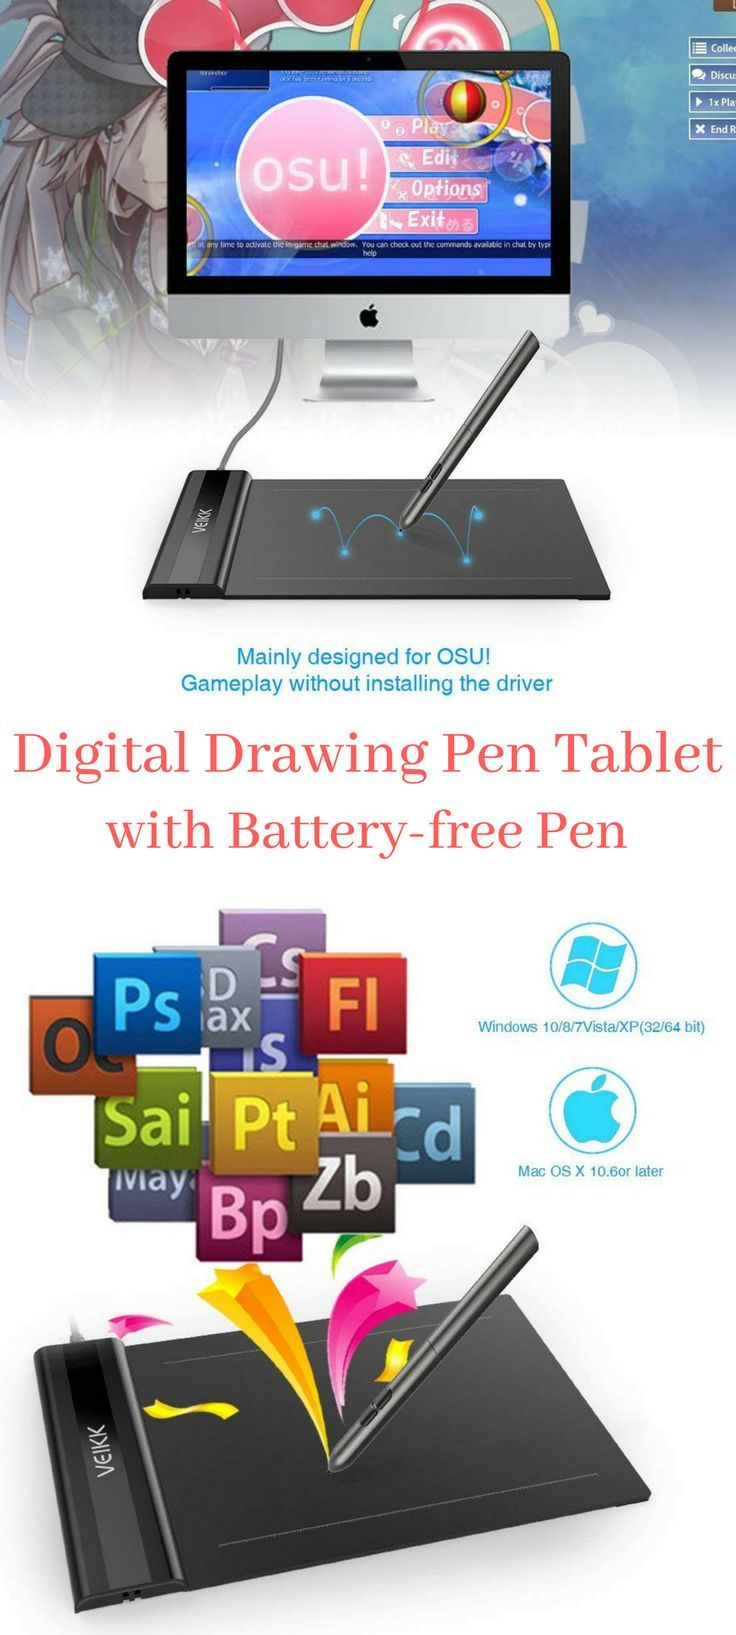 Yay drawing tablet! I want it! OSU!Tablet VEIKK S640 6x4